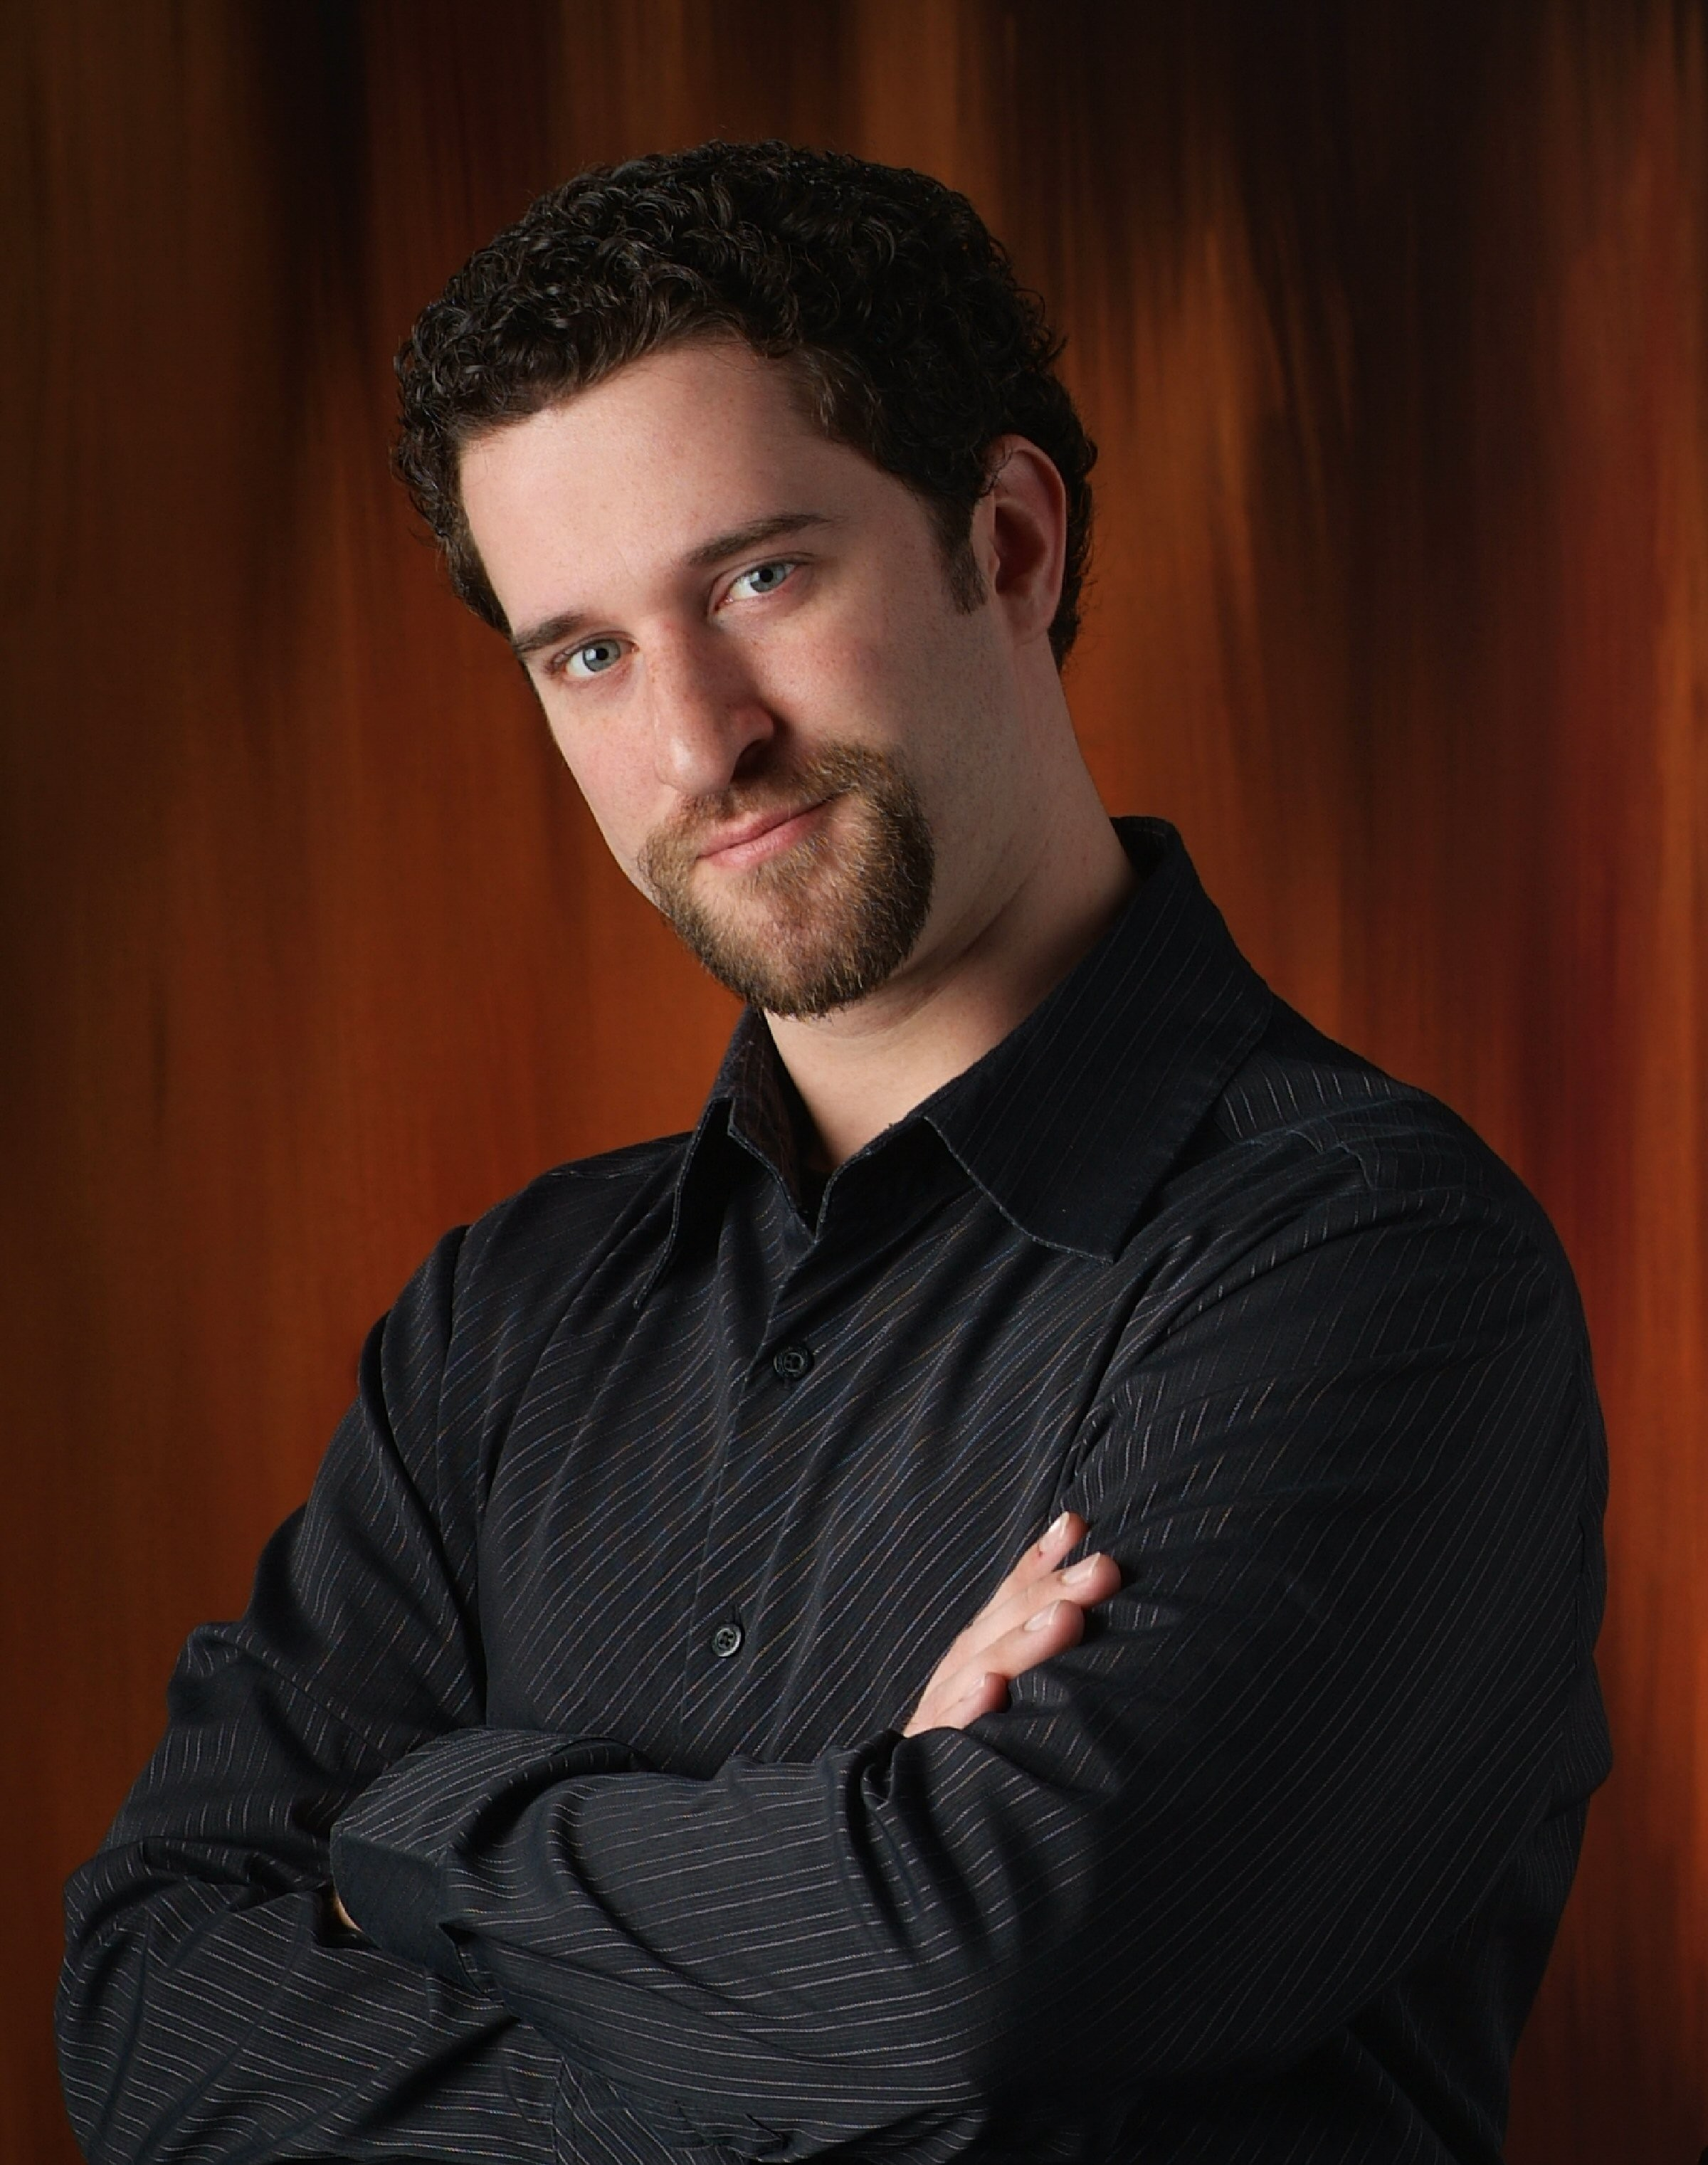 'Saved By The Bell': Where Are They Now? |Dustin Diamond Meme